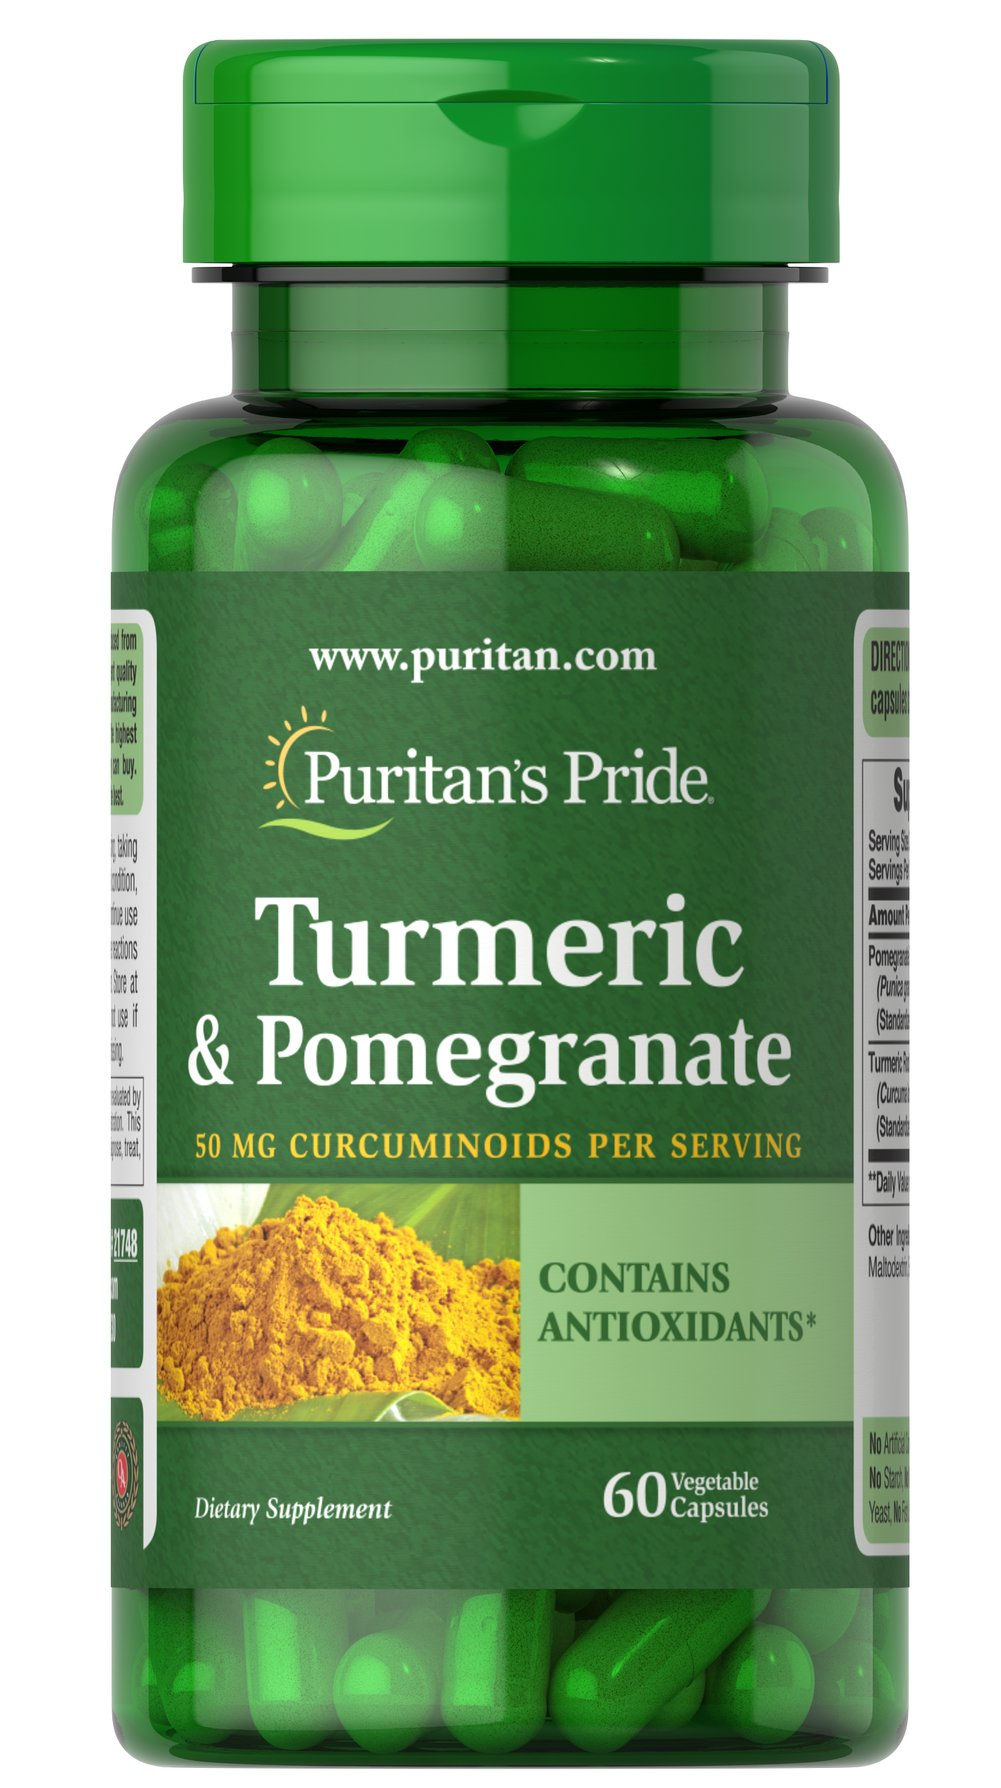 Turmeric & Pomegranate